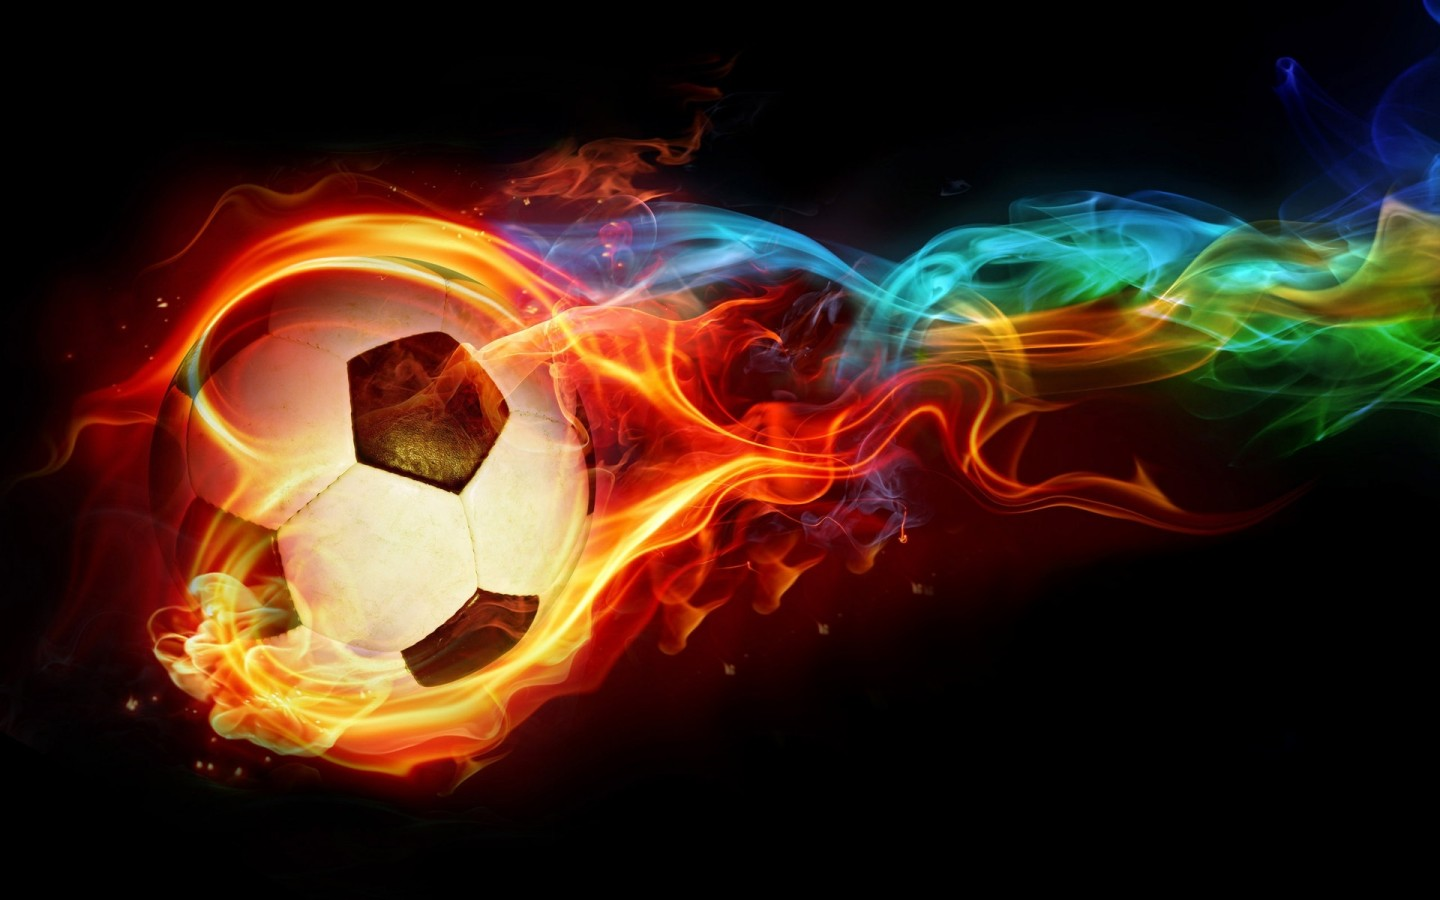 cool-soccer-ball-backgrounds-hd-images-3 jpg (1440×900) | idk